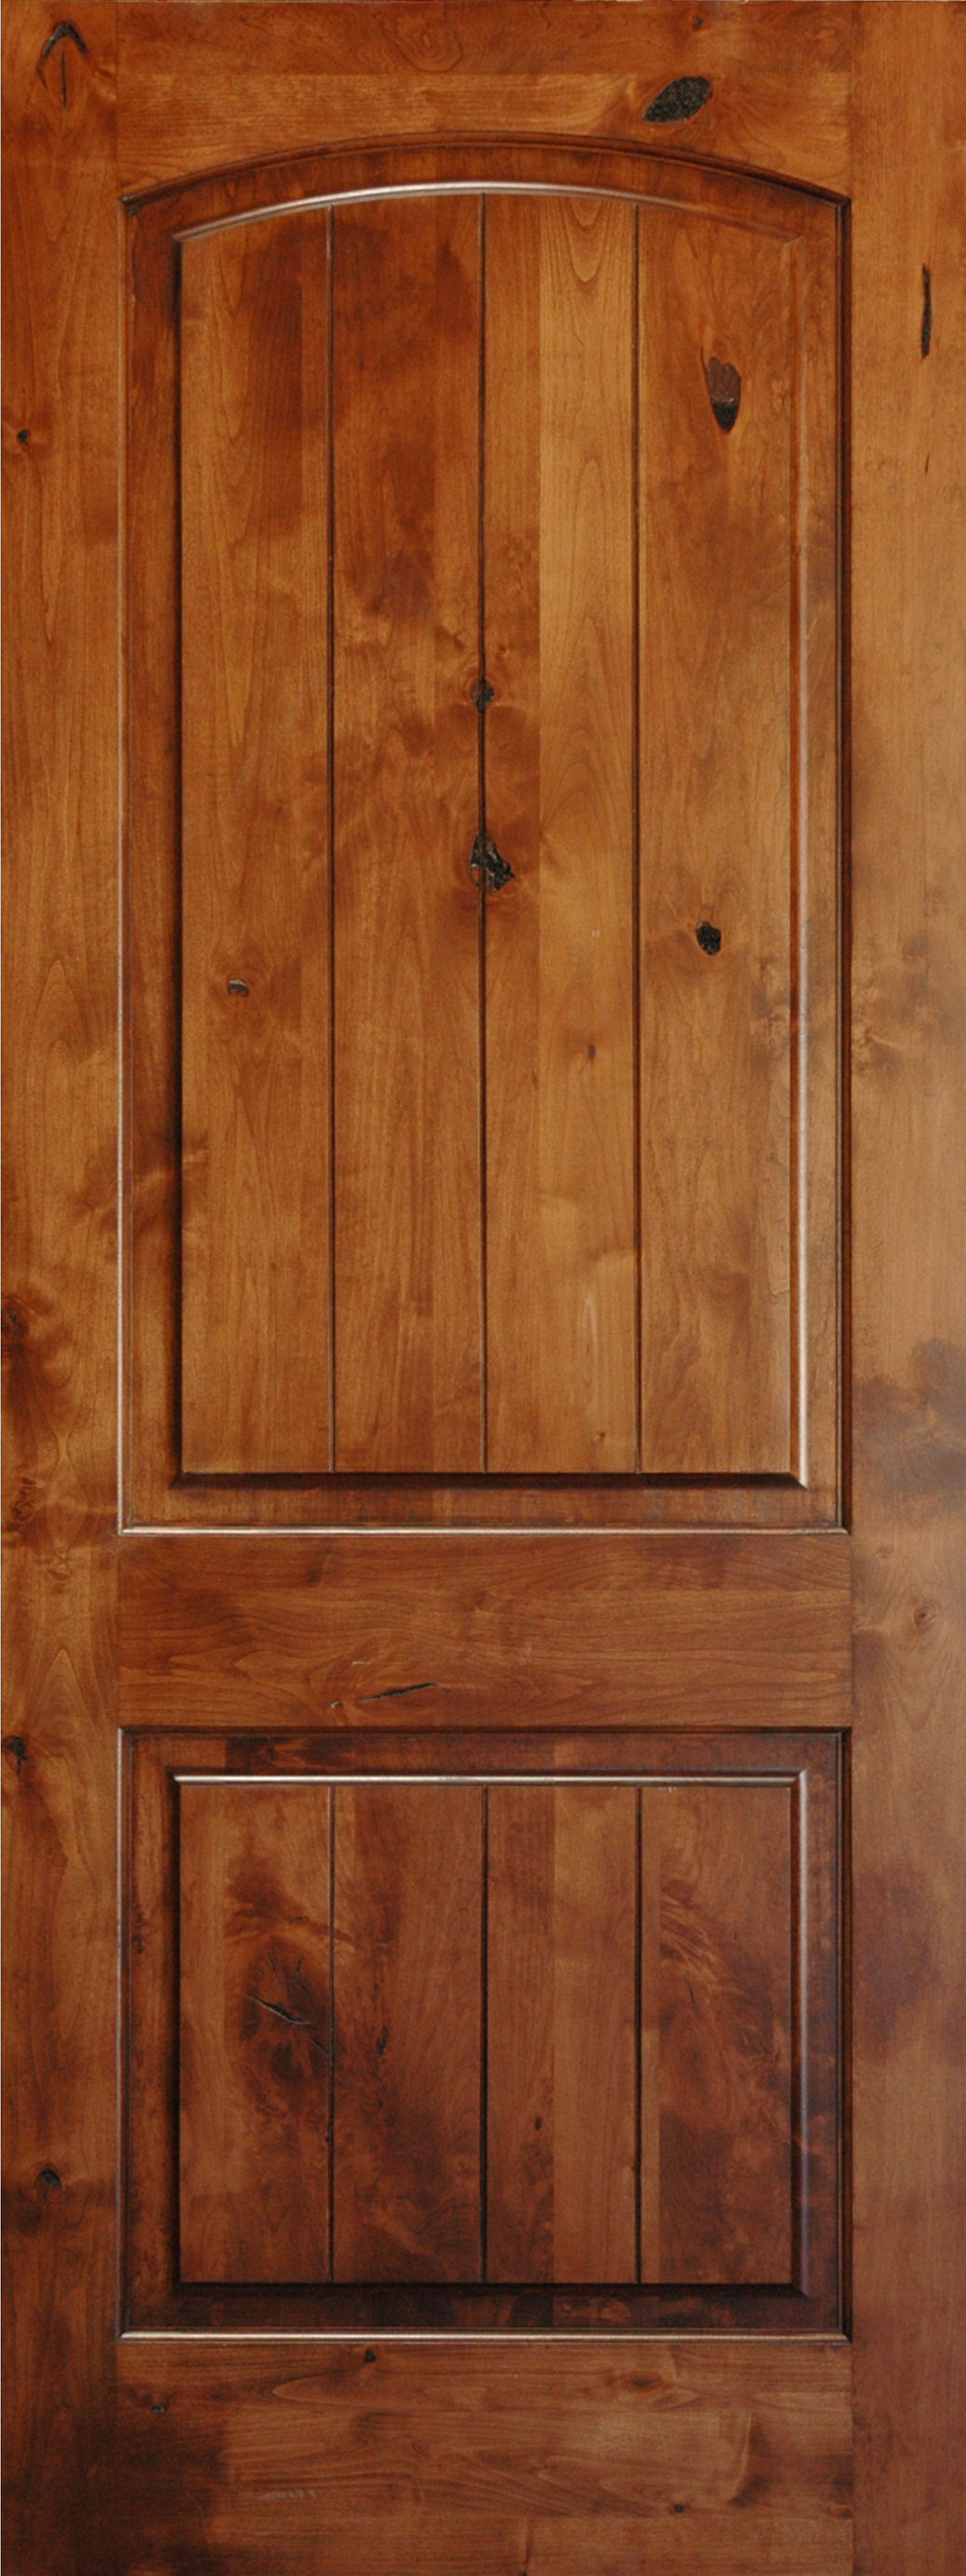 Knotty alder 8 39 v groove arch 2 panel wood interior doors for Solid wood interior doors